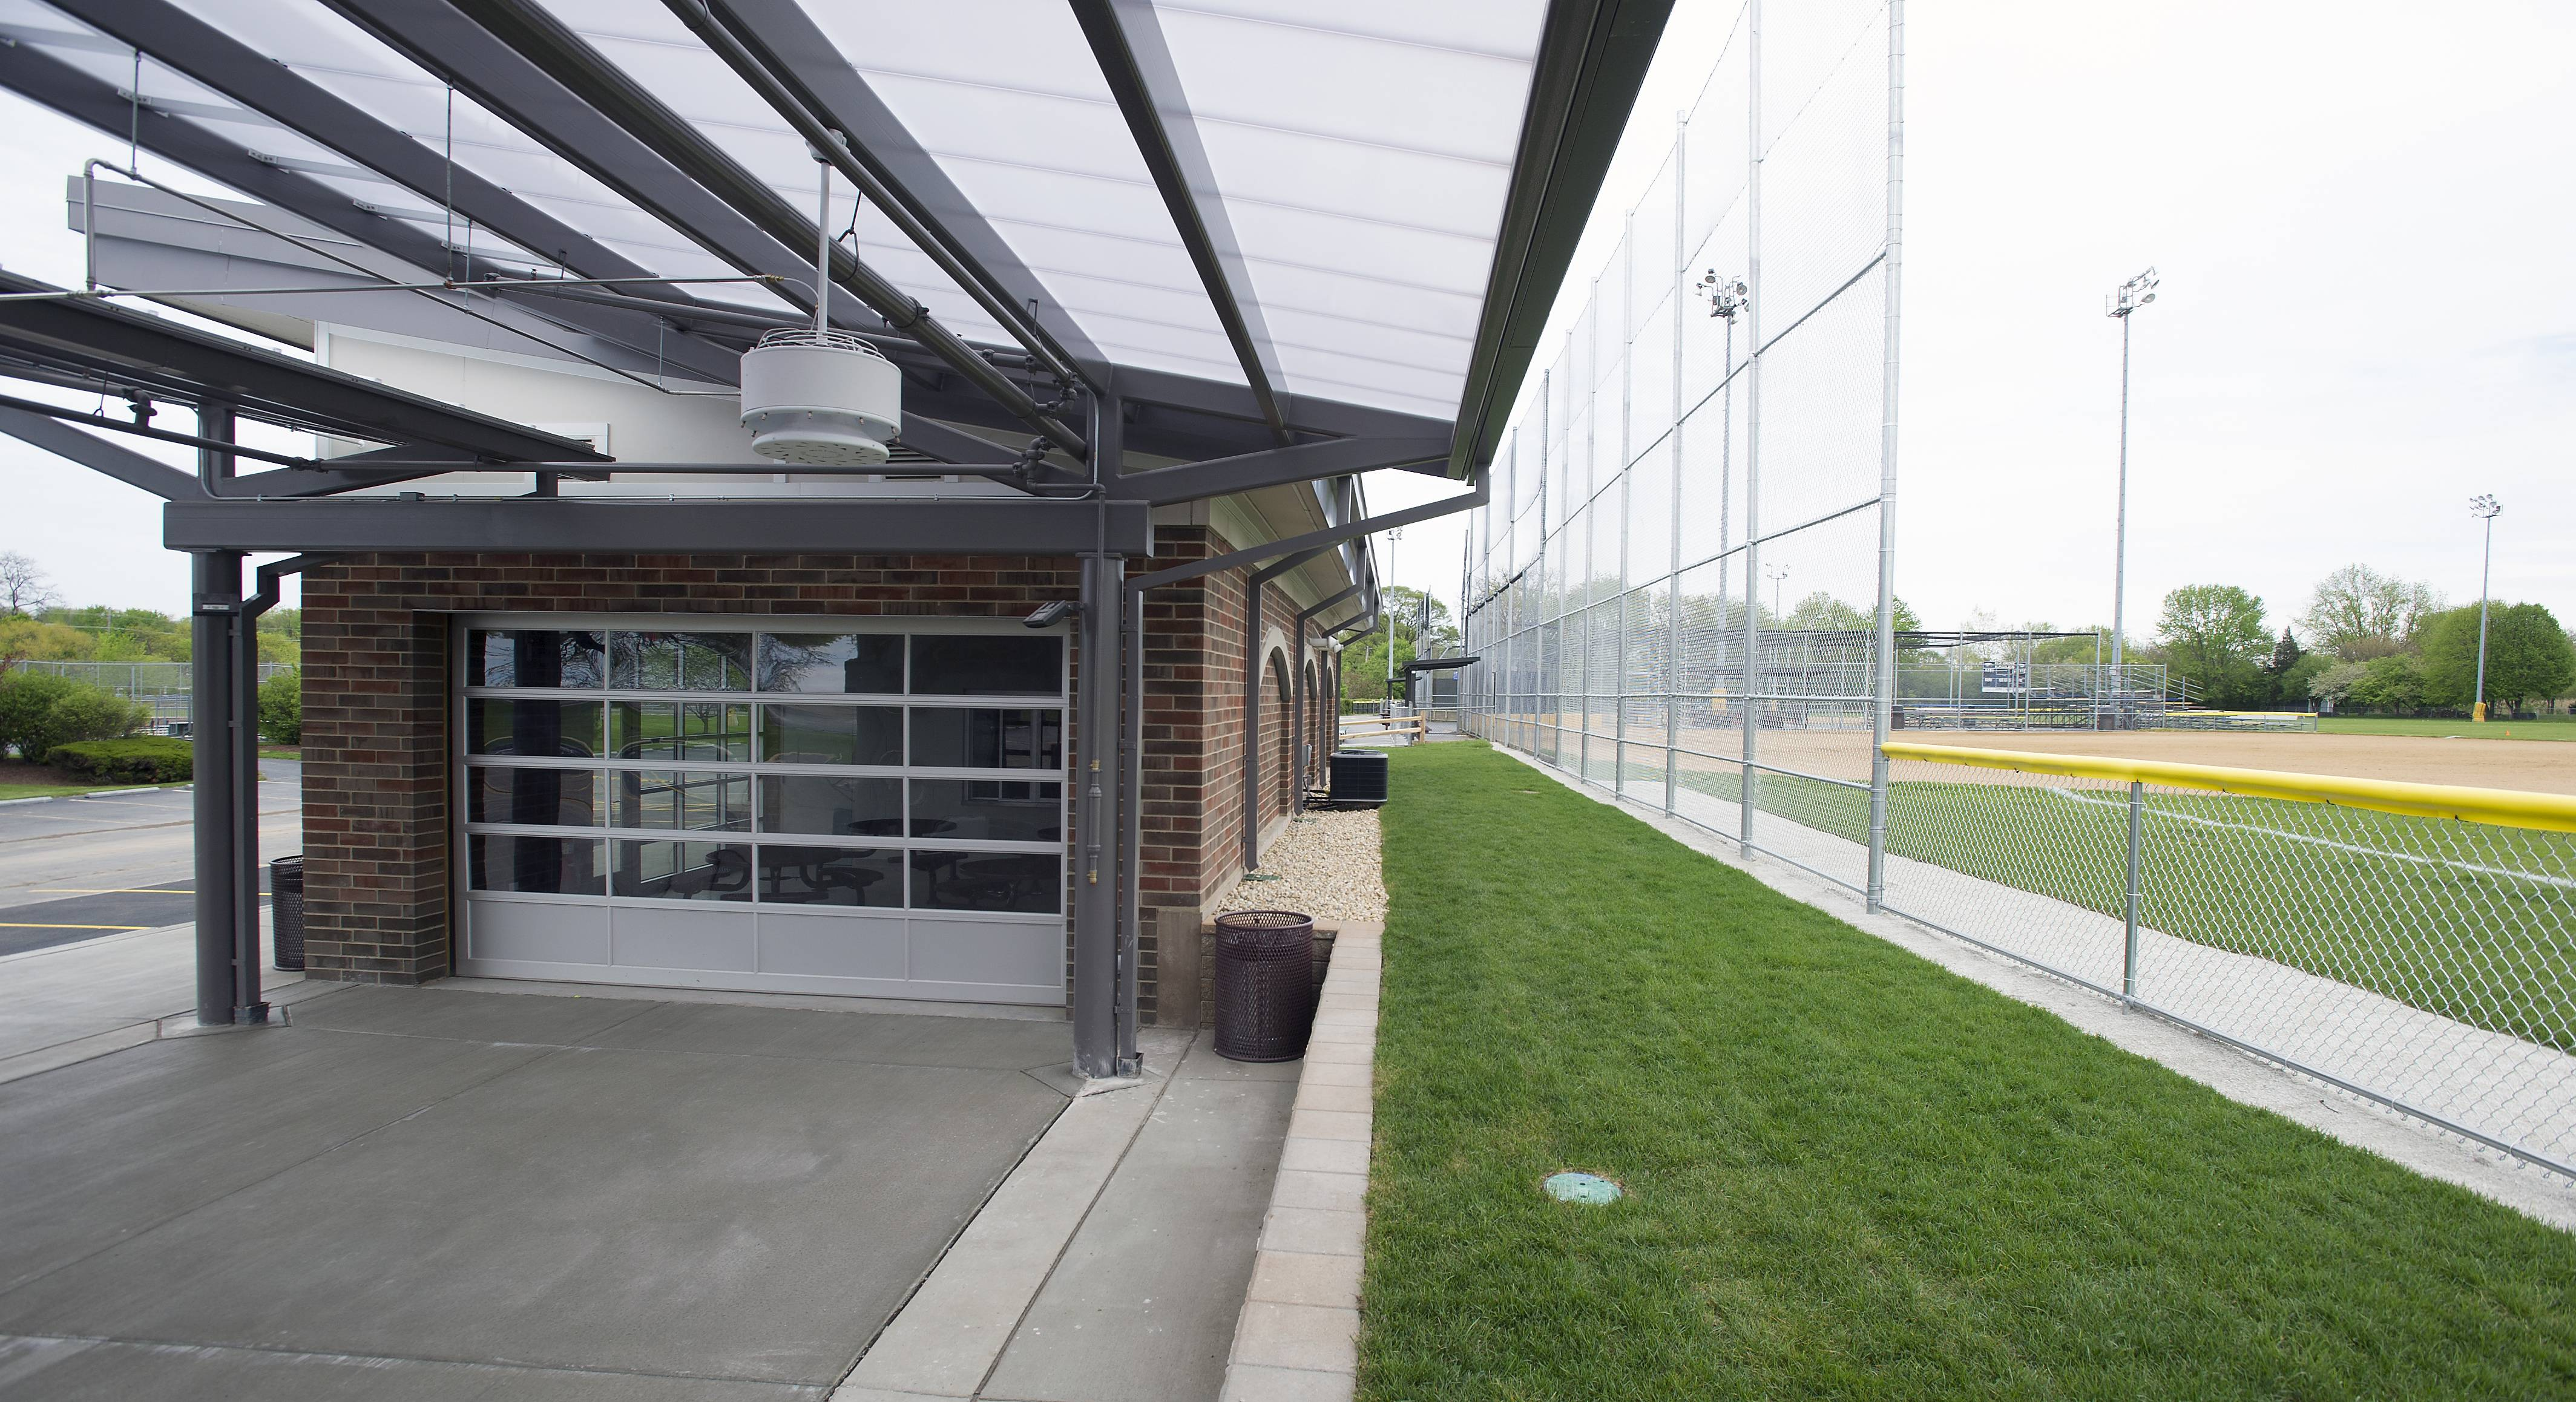 The Elk Grove Park District completed a $2.2 million project at the Community Athletic Field on Arlington Heights Road which includes new concession stands, water misters and a covered area next to the baseball field.